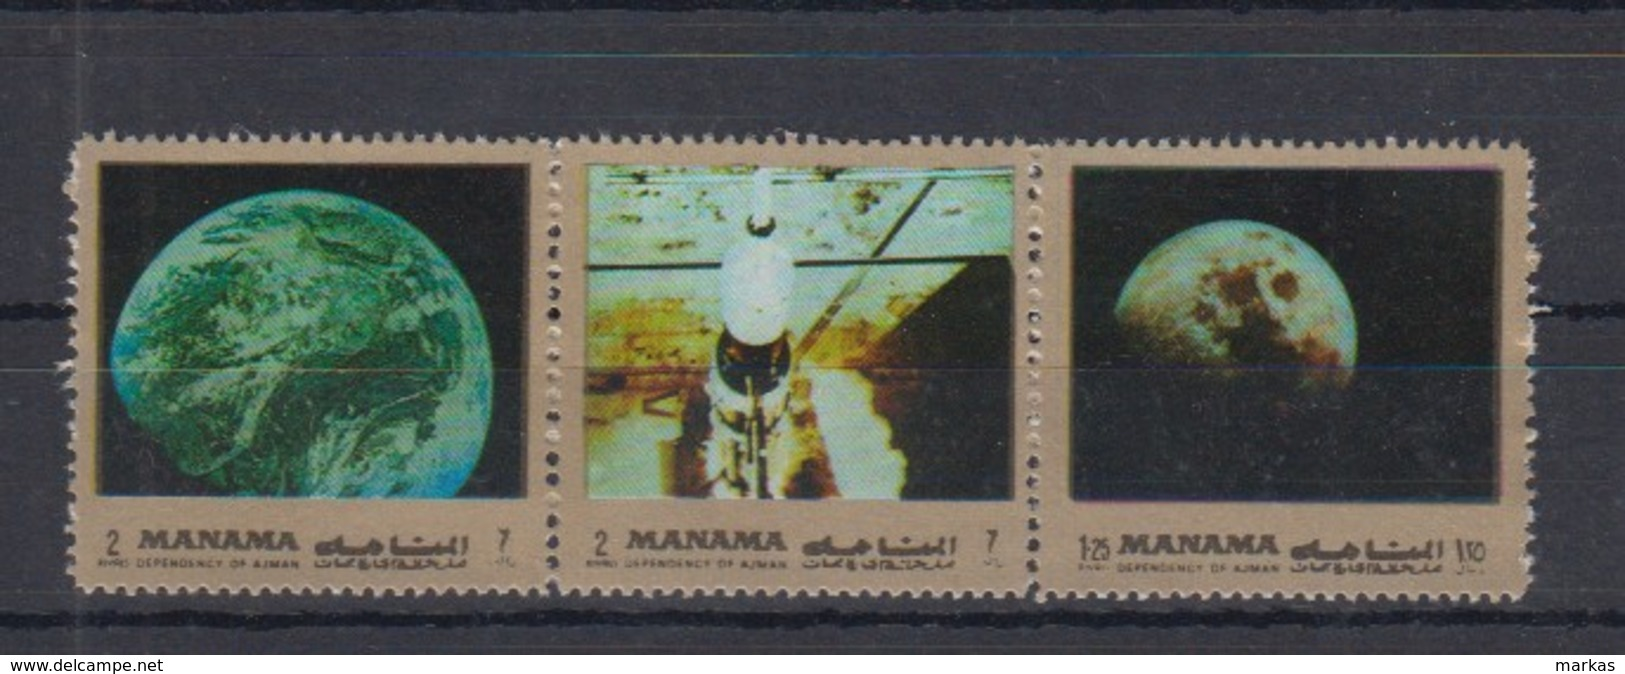 I20. Manama - MNH - Space - Spaceships - Moon - Other